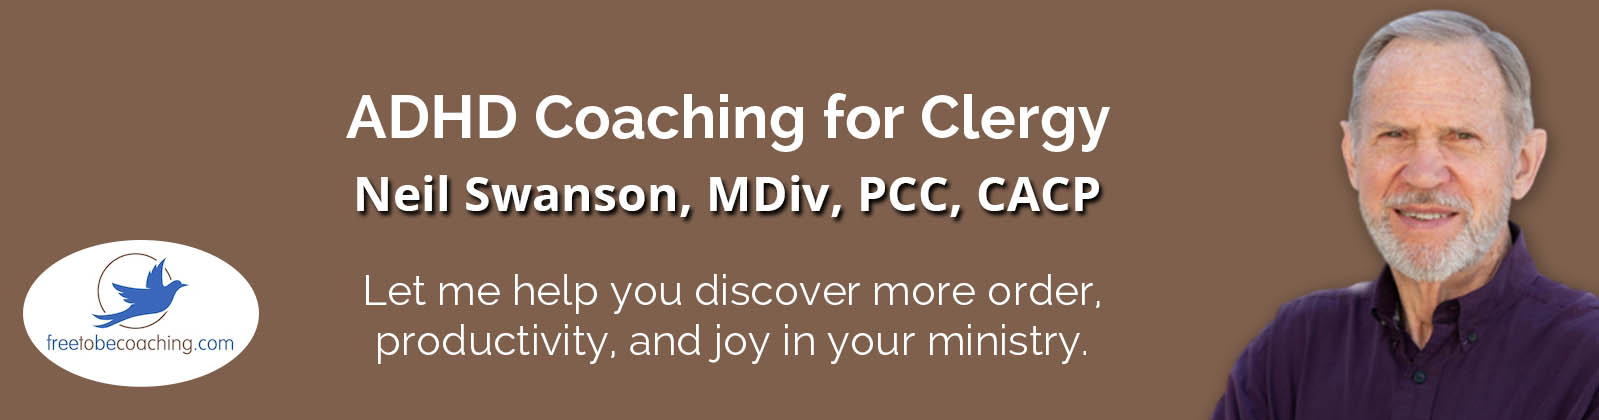 Neil Swanson Coaching for Clergy header graphic